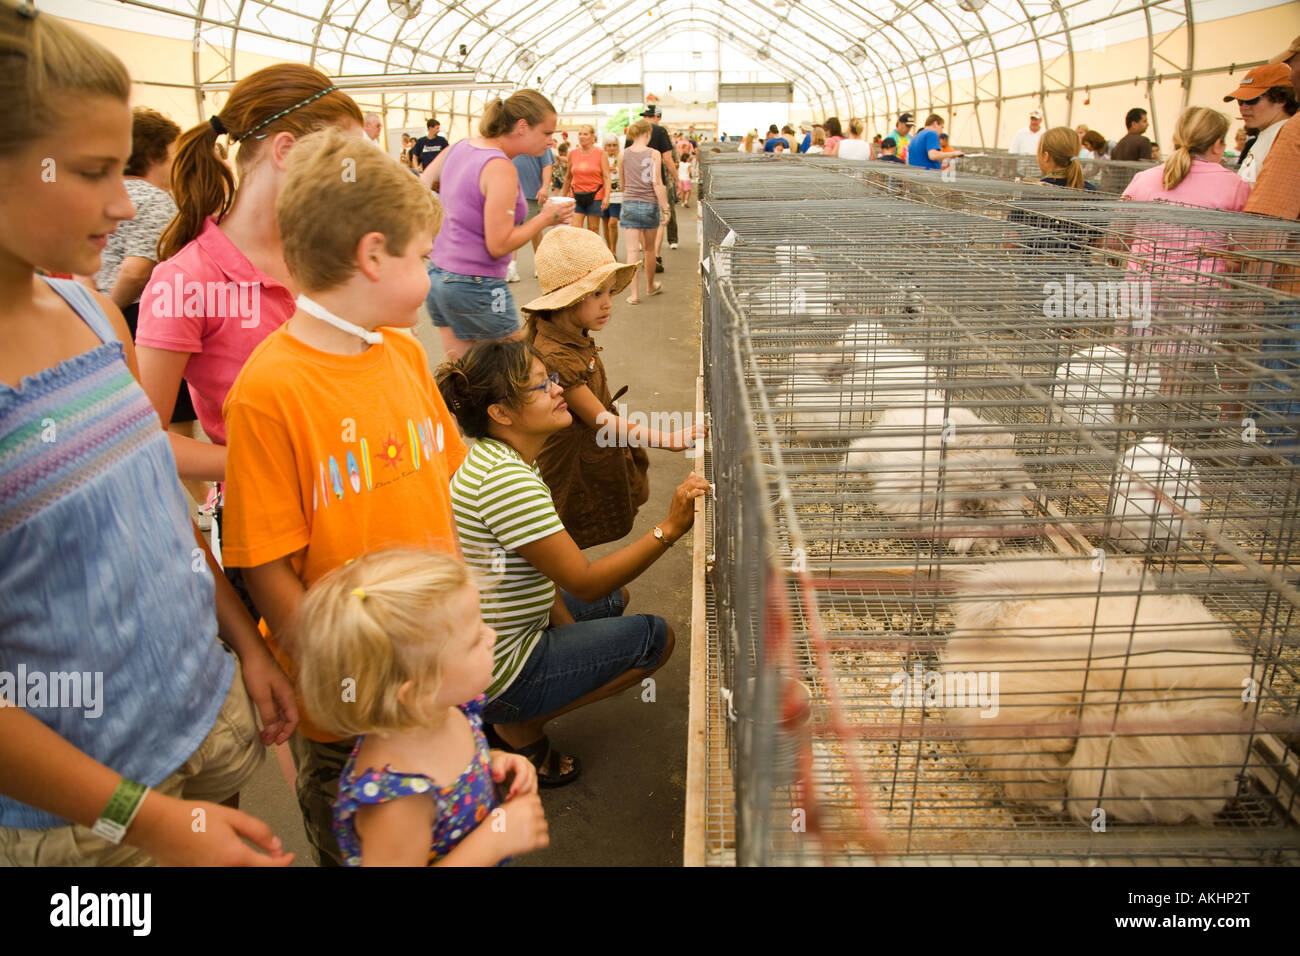 Rabbits In Cages Stock Photos & Rabbits In Cages Stock Images - Alamy